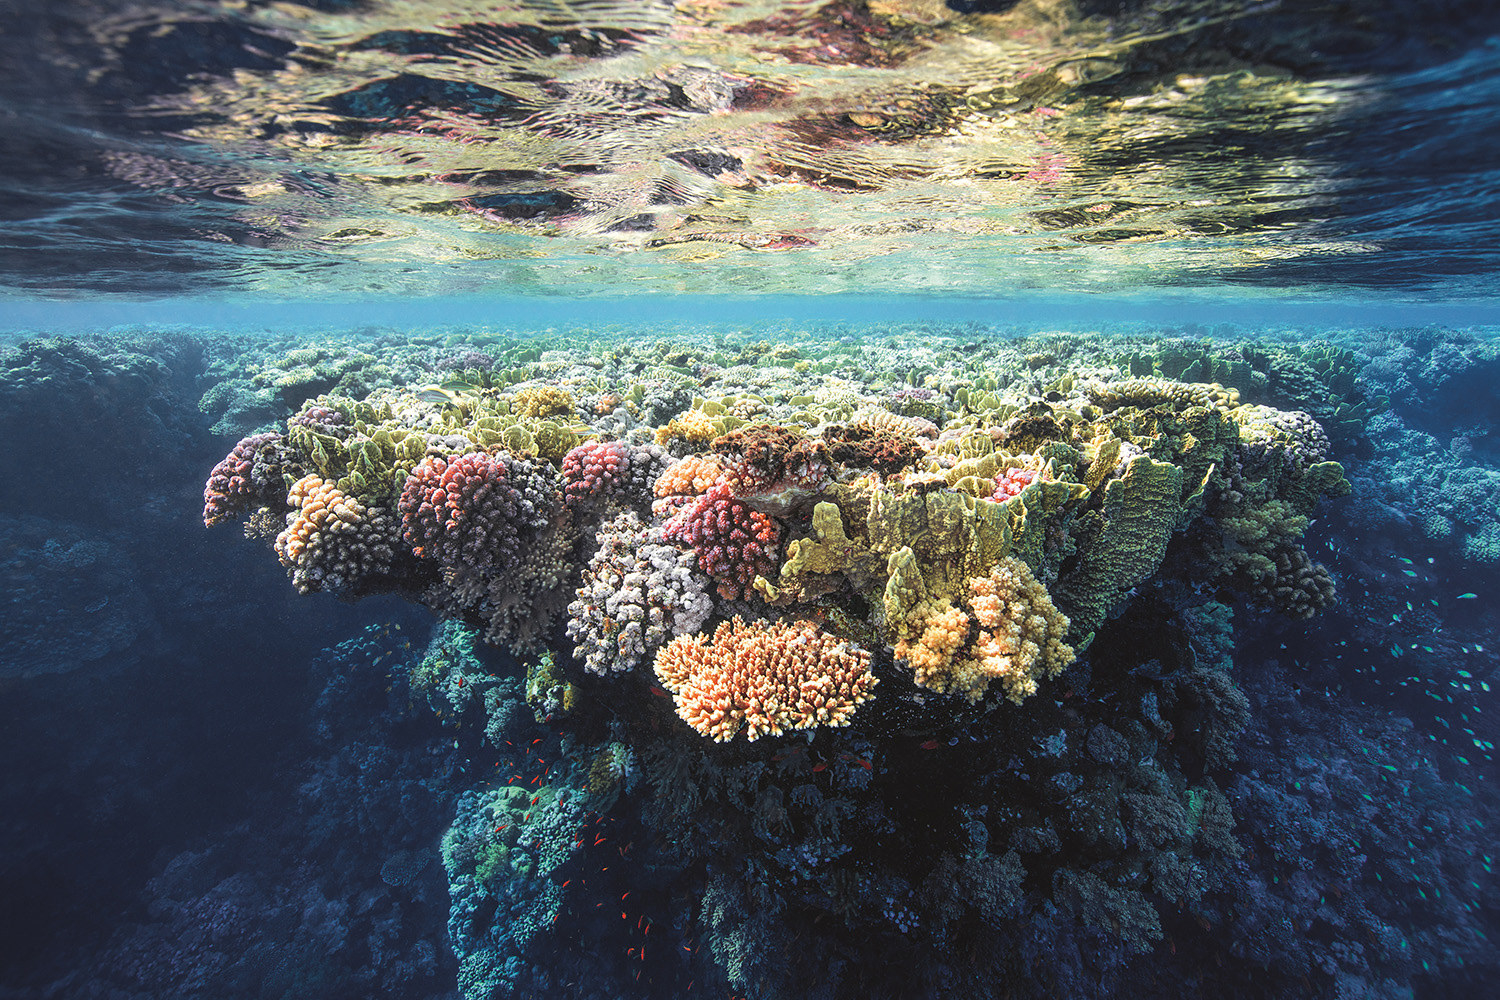 A coral reef sits just below the water's surface, illuminated by sunlight